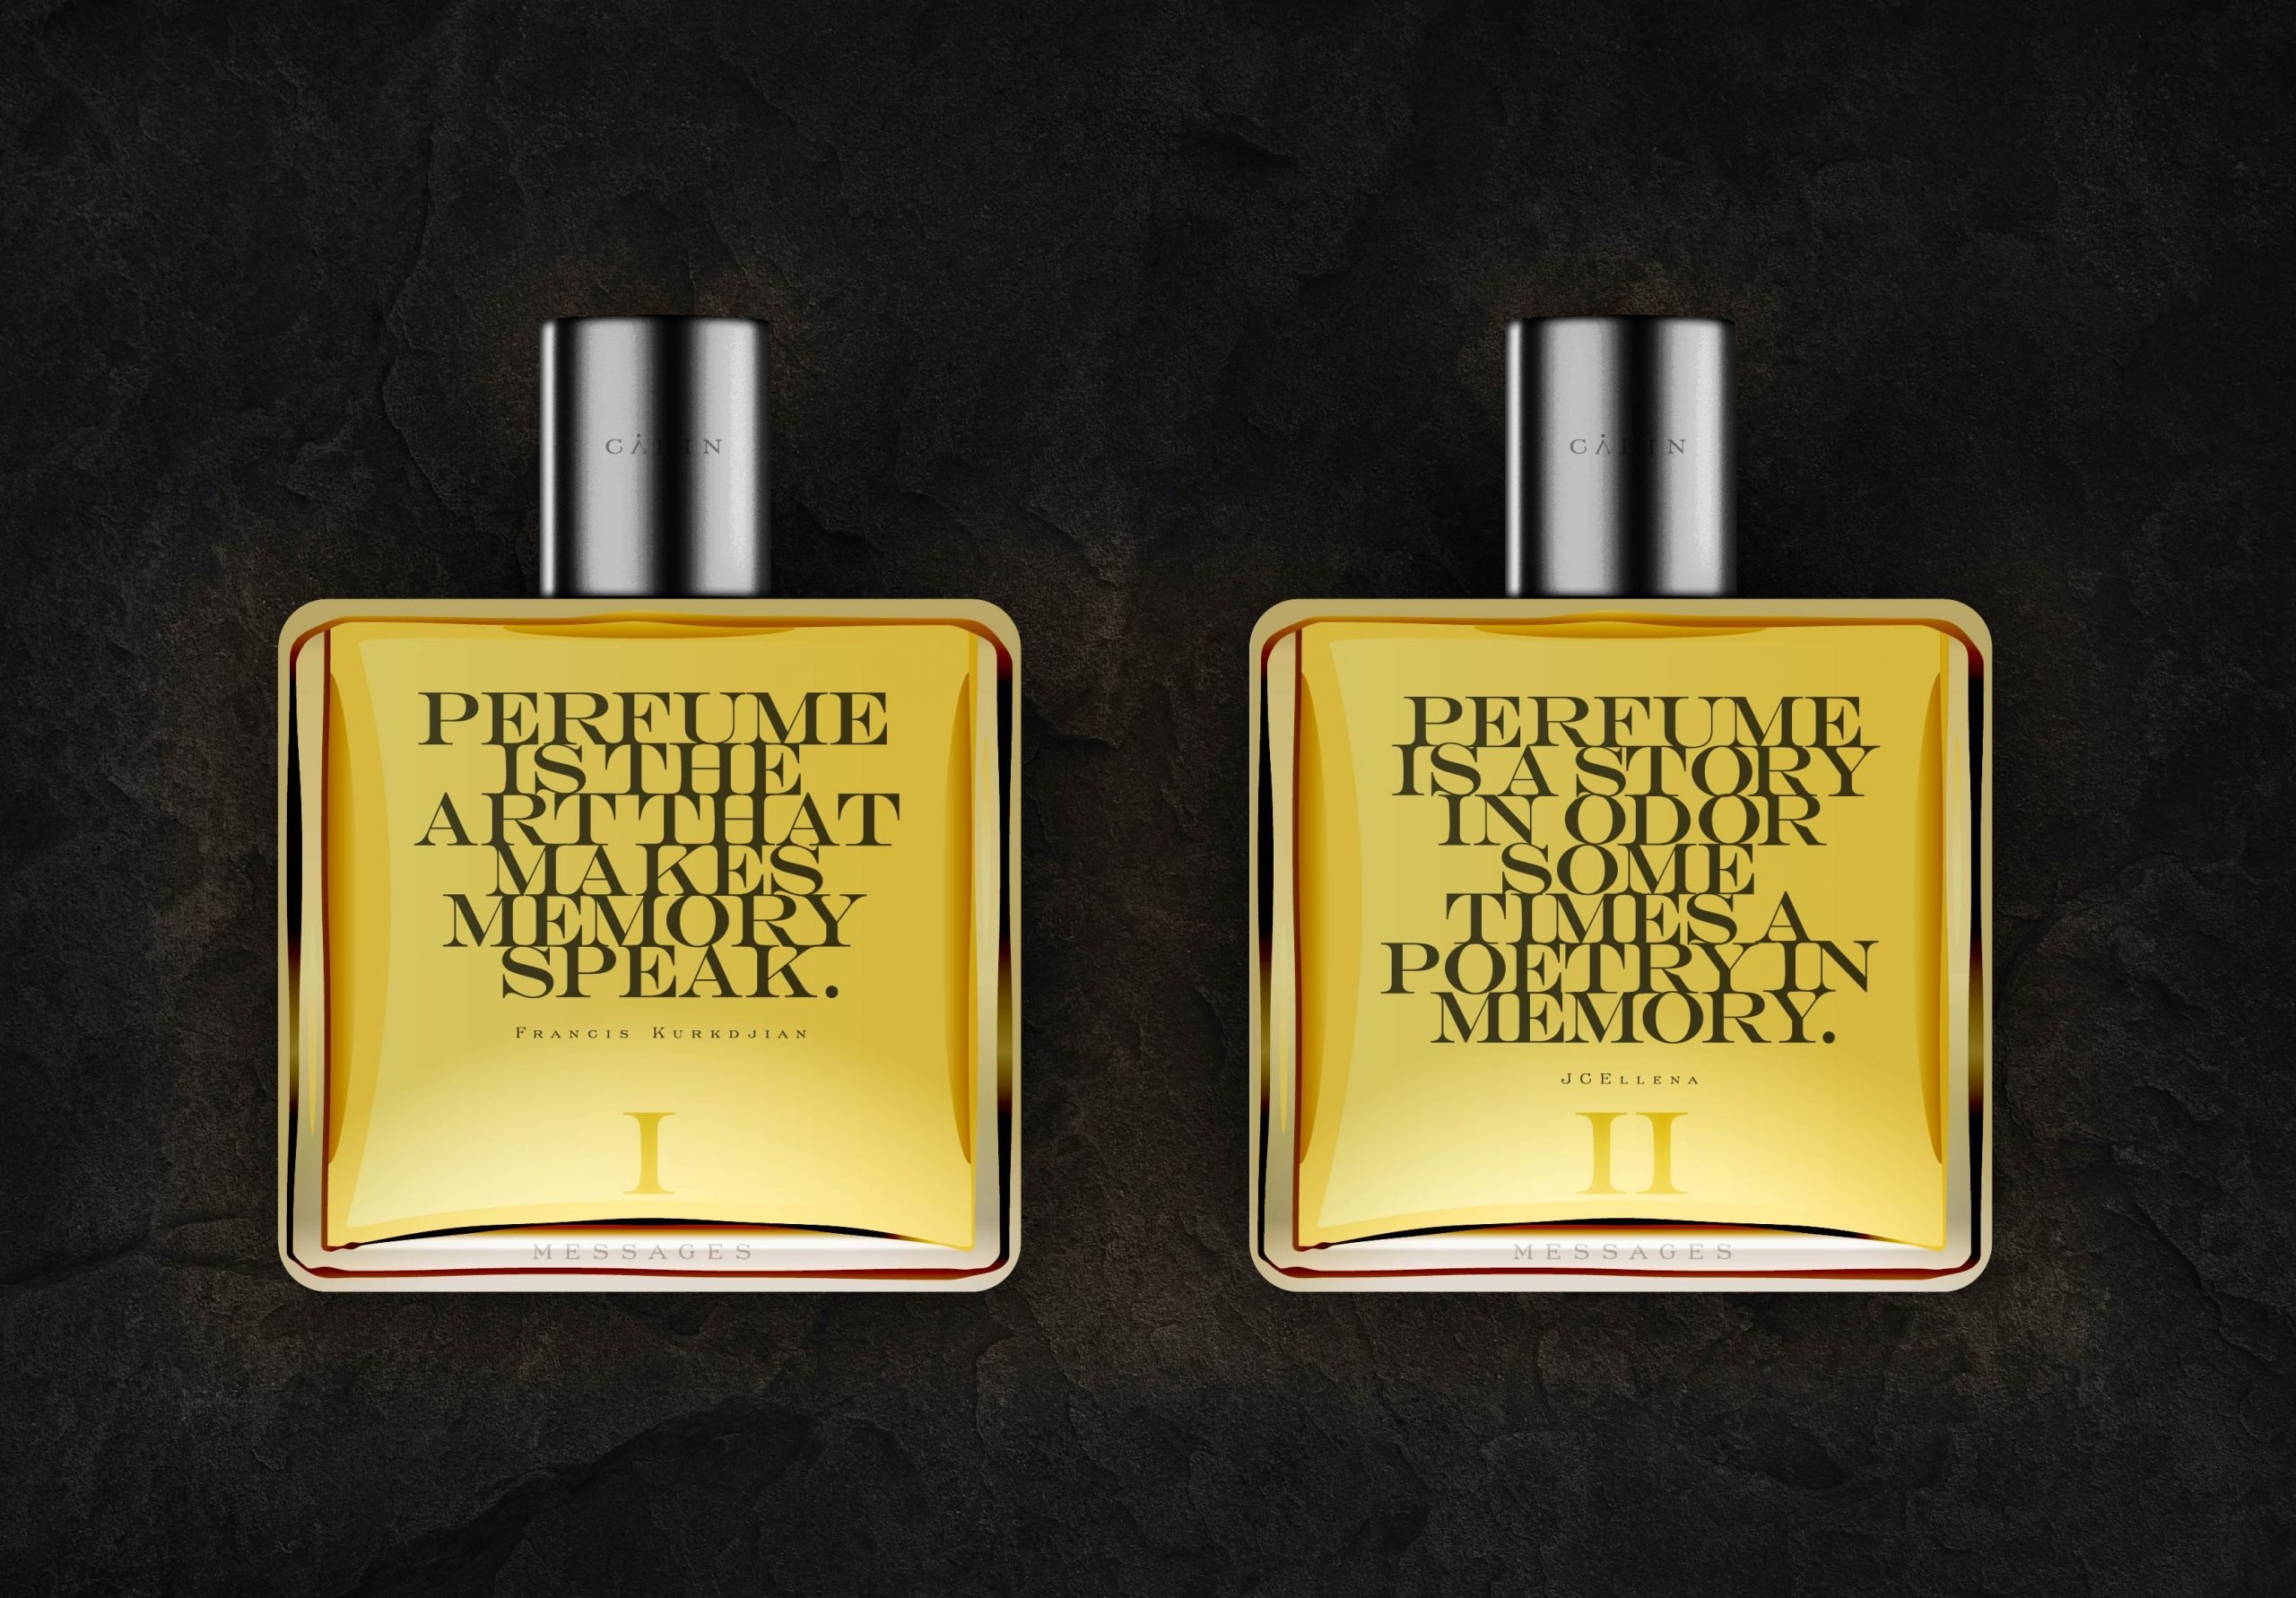 PERFUME_MESSAGES-FINAL-02